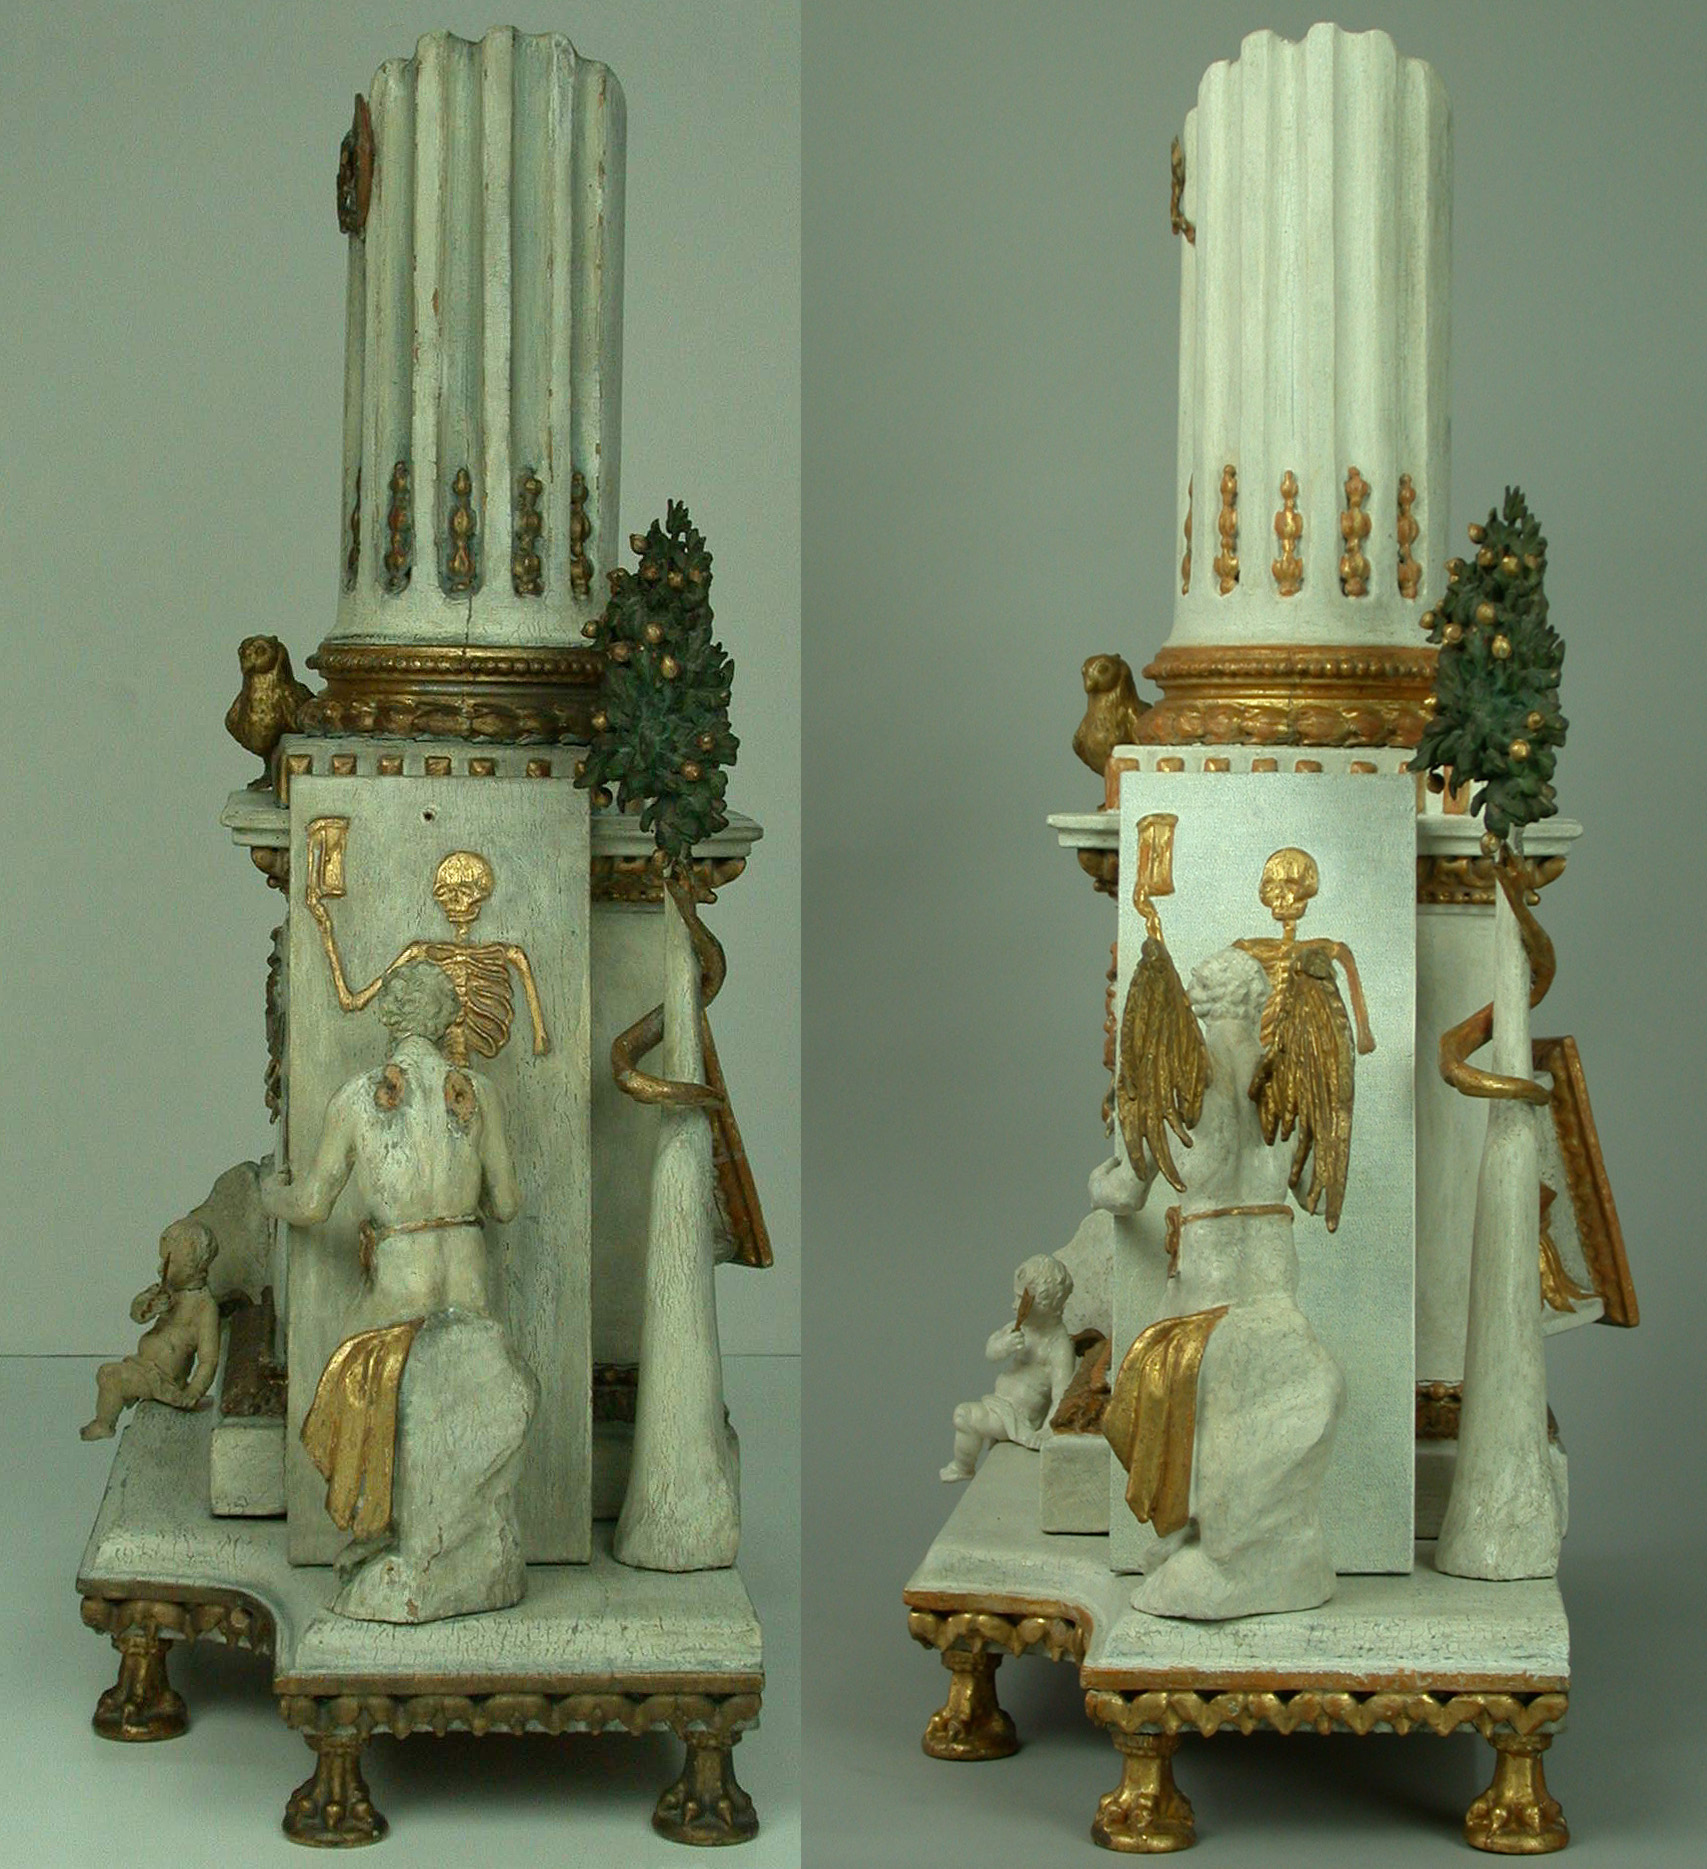 Conservation and restoration of a baroque sculpture and clock.